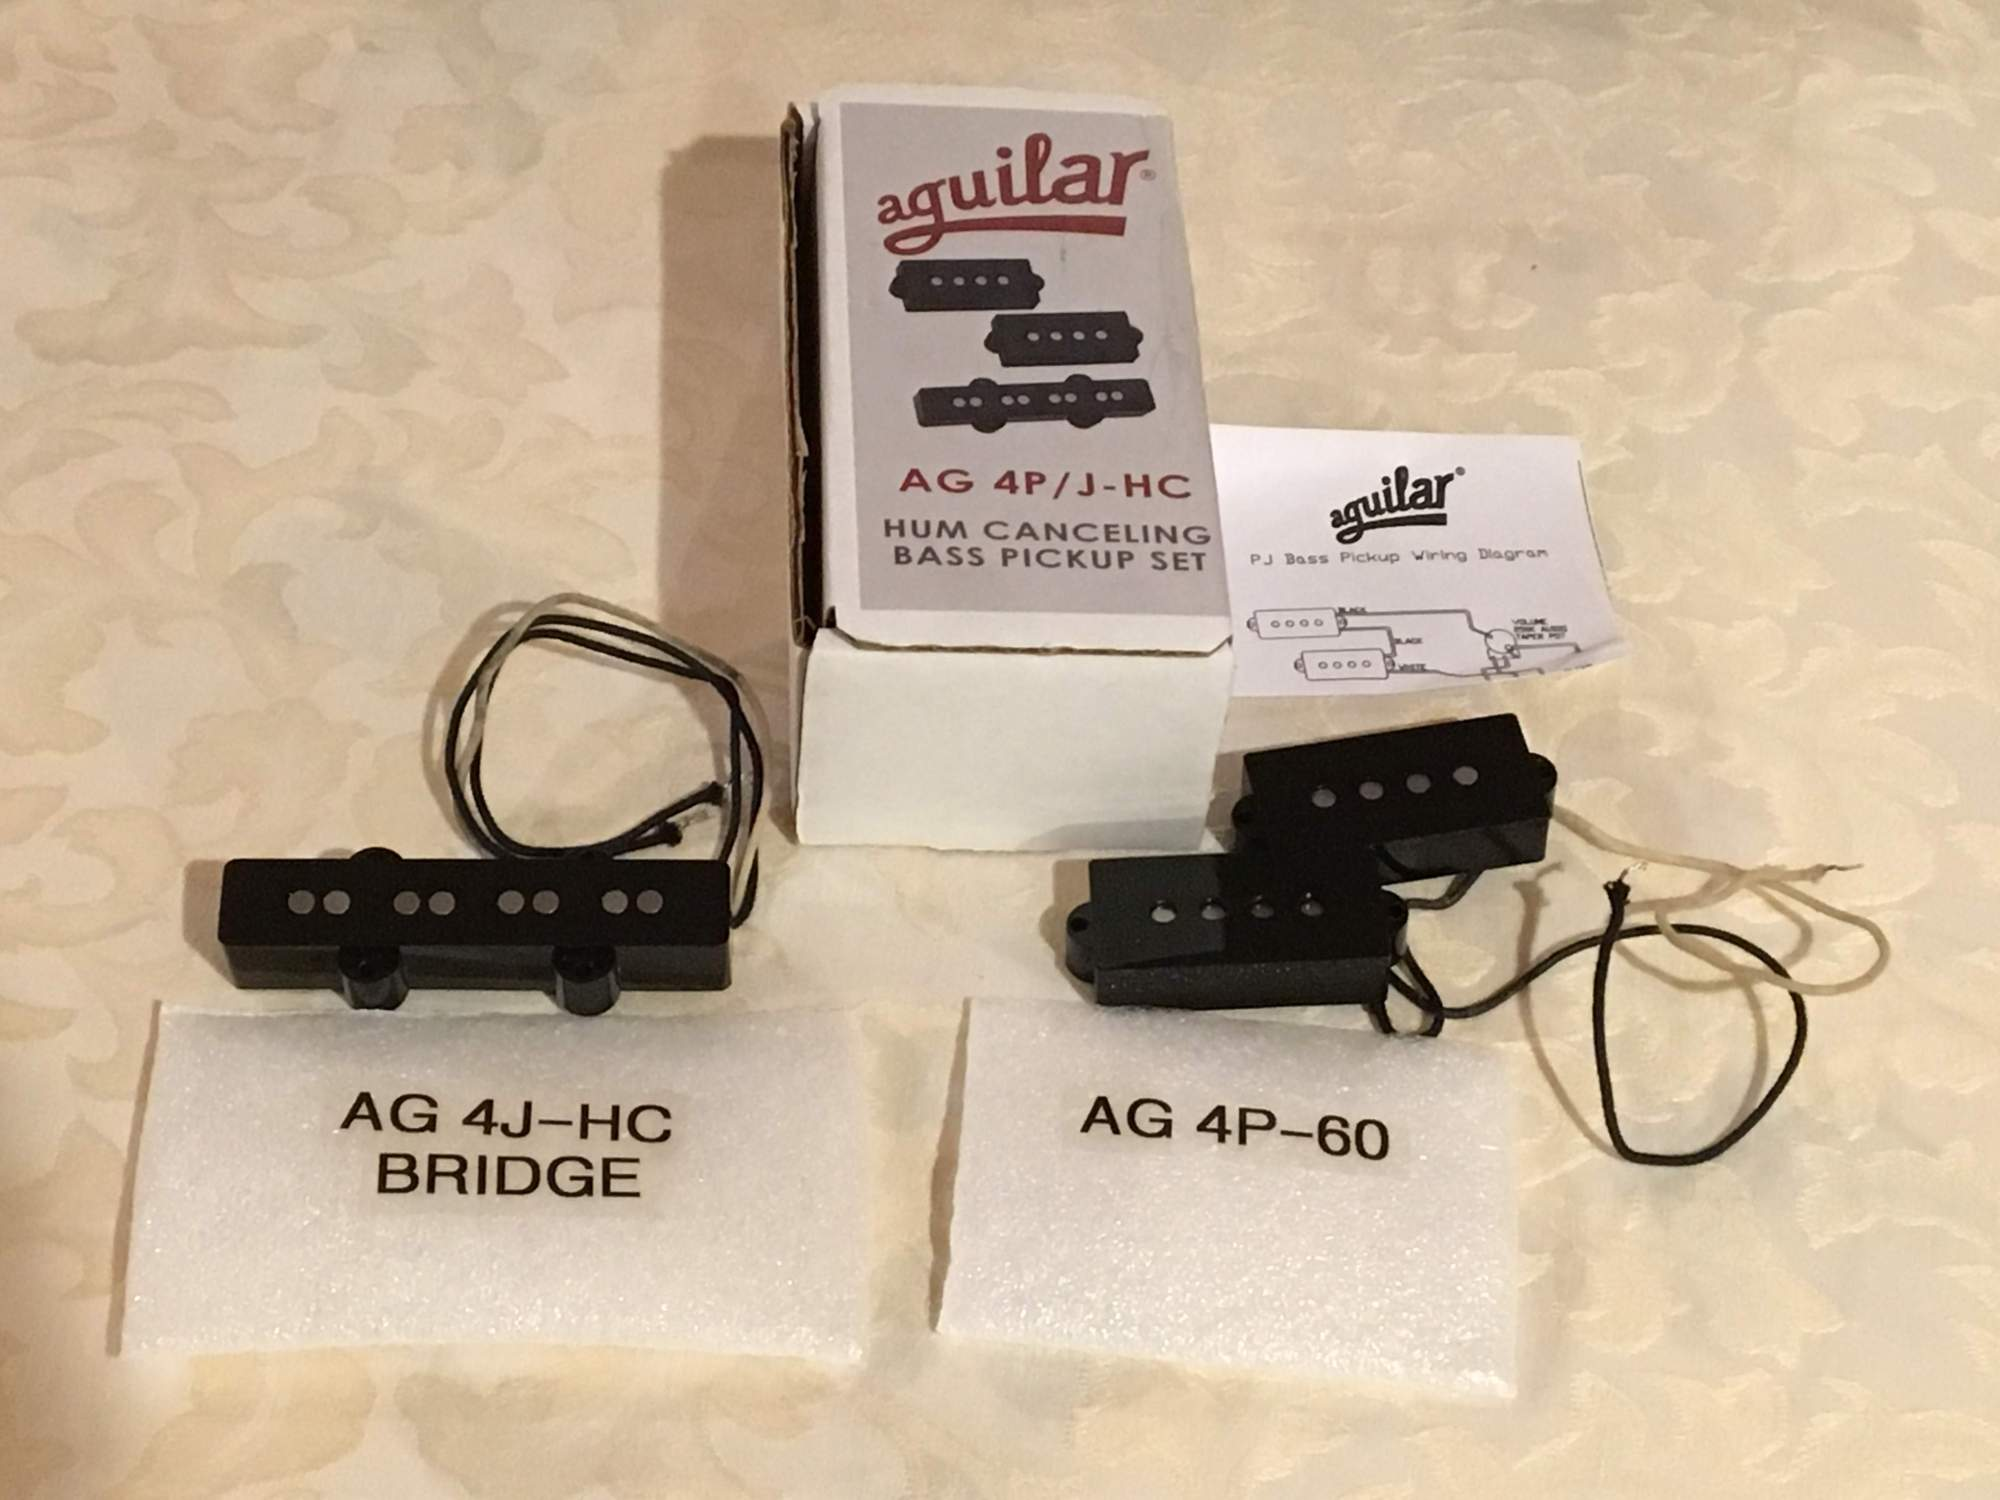 hight resolution of aguilar pj wiring diagram sold aguilar pj hum canceling bass pickup set ag 4p